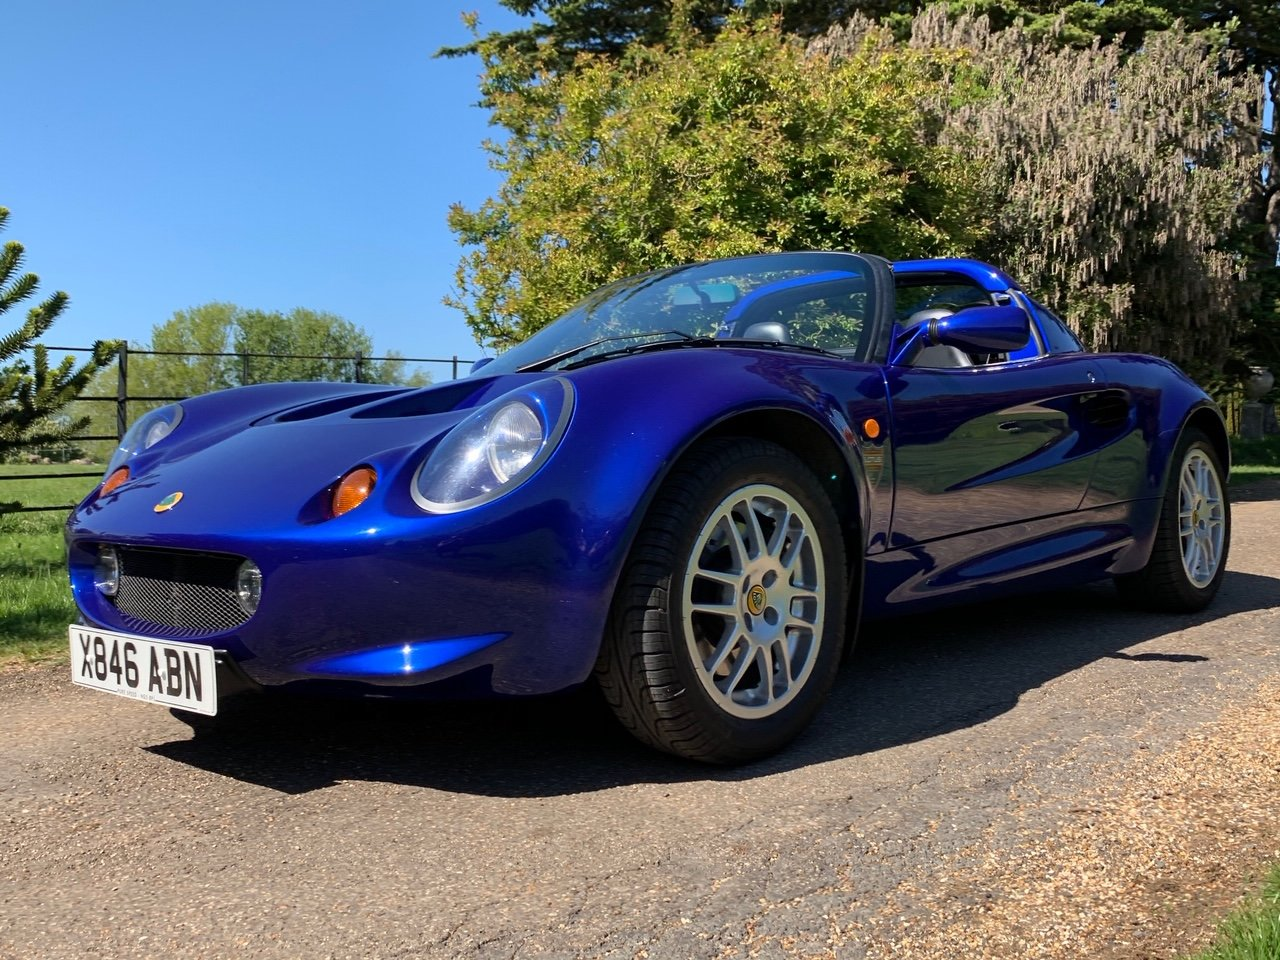 2000 Lotus Elise S1 - ONLY 17,900 Miles *** NOW SOLD *** For Sale (picture 2 of 6)